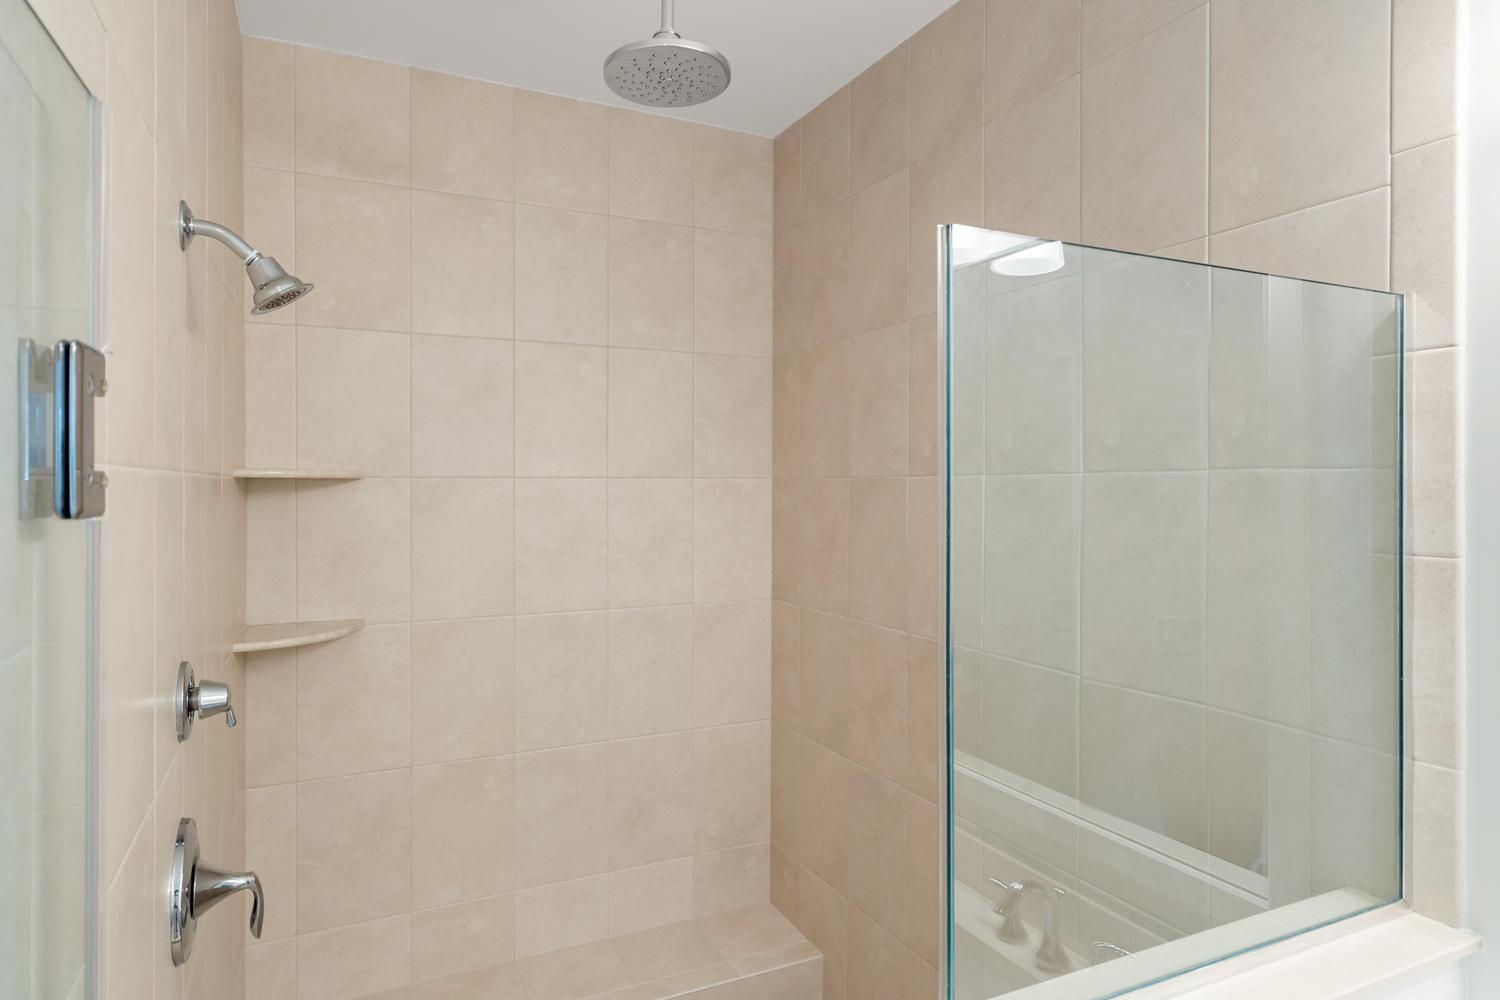 Owners Shower with Ceramic Tile and Frameless Shower Door